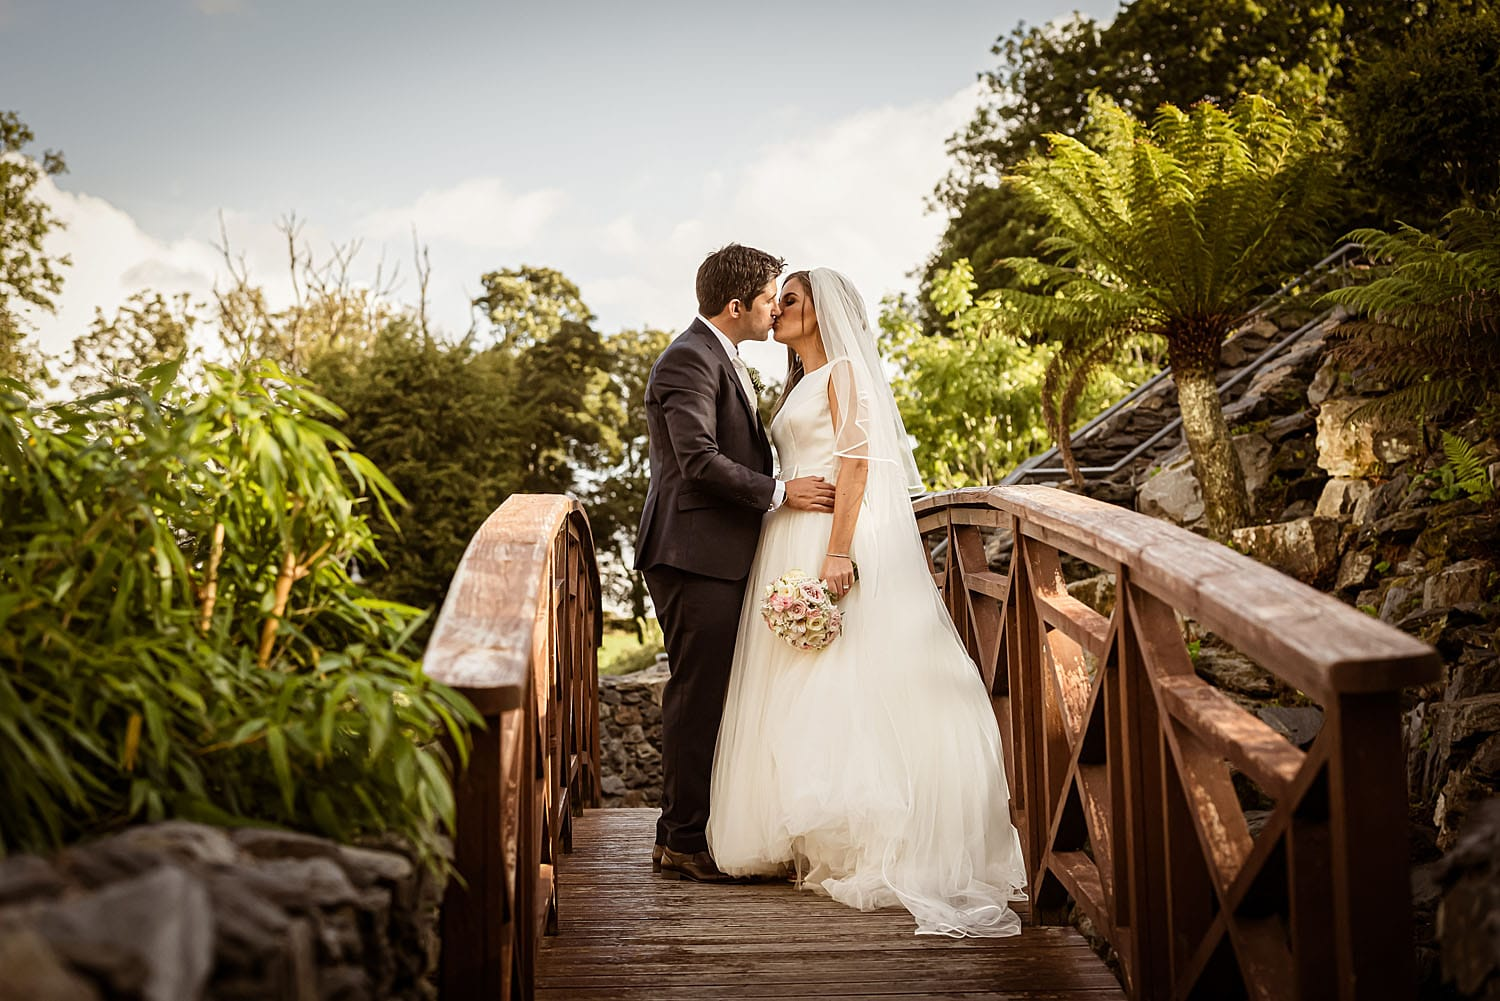 33_Kinsale-Hotel-Weddings_074_Kate-Barry-Album_D51_6331-copy